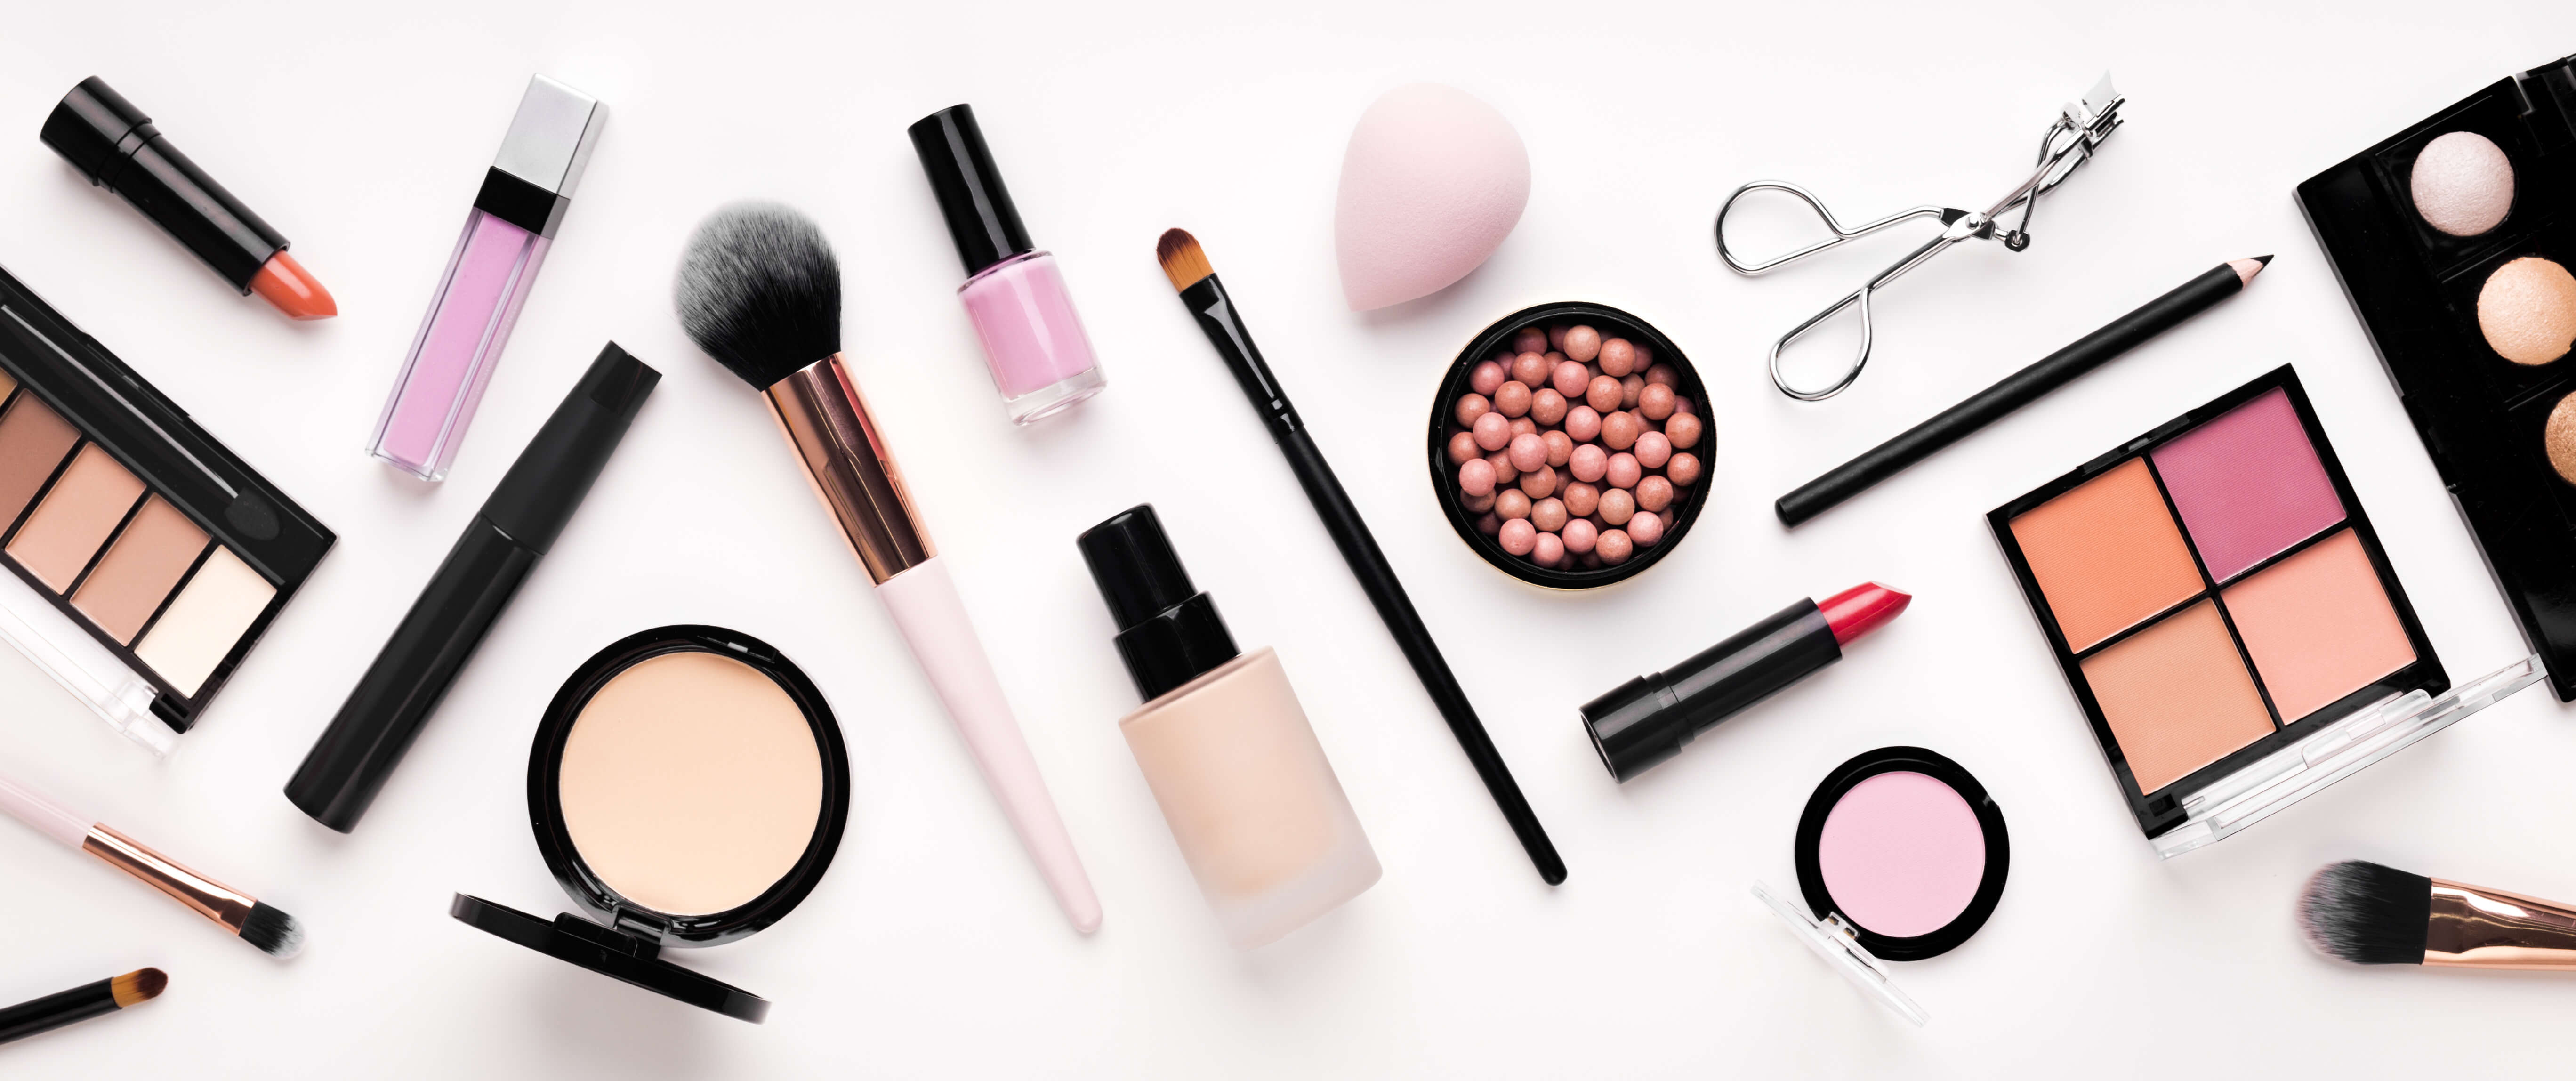 cosmetics private label products